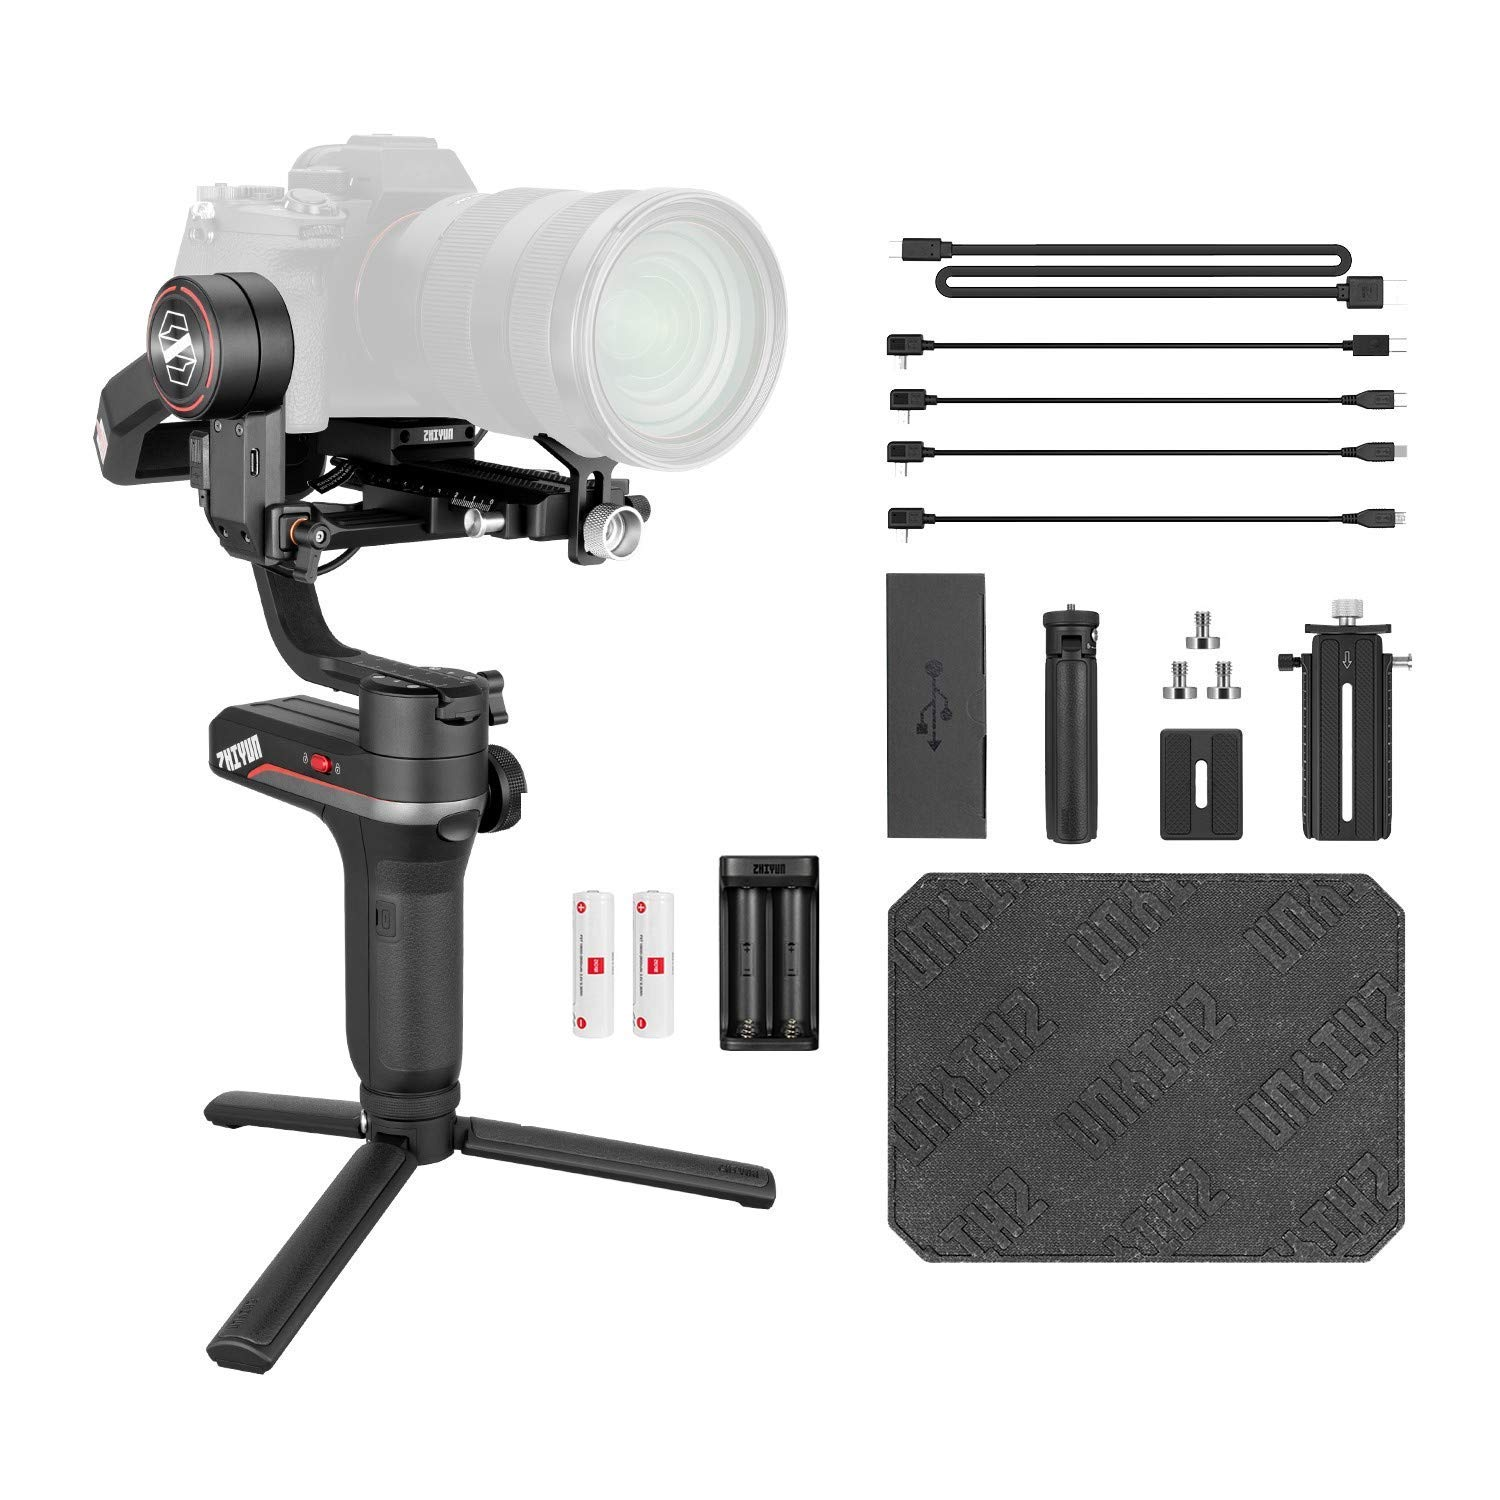 Zhiyun Weebill S 3-Axis Handheld Gimbal Stabilizer for DSLR& Mirrorless Camera Sony A7M3 A7R3 A7 III A9 Nikon Z6 Panasonic S1 GH5s with 24-70mm GM Lens Canon 5D4 5DIV 5DIII 5D3 EOS R BMPCC 4K Weebills by zhi yun